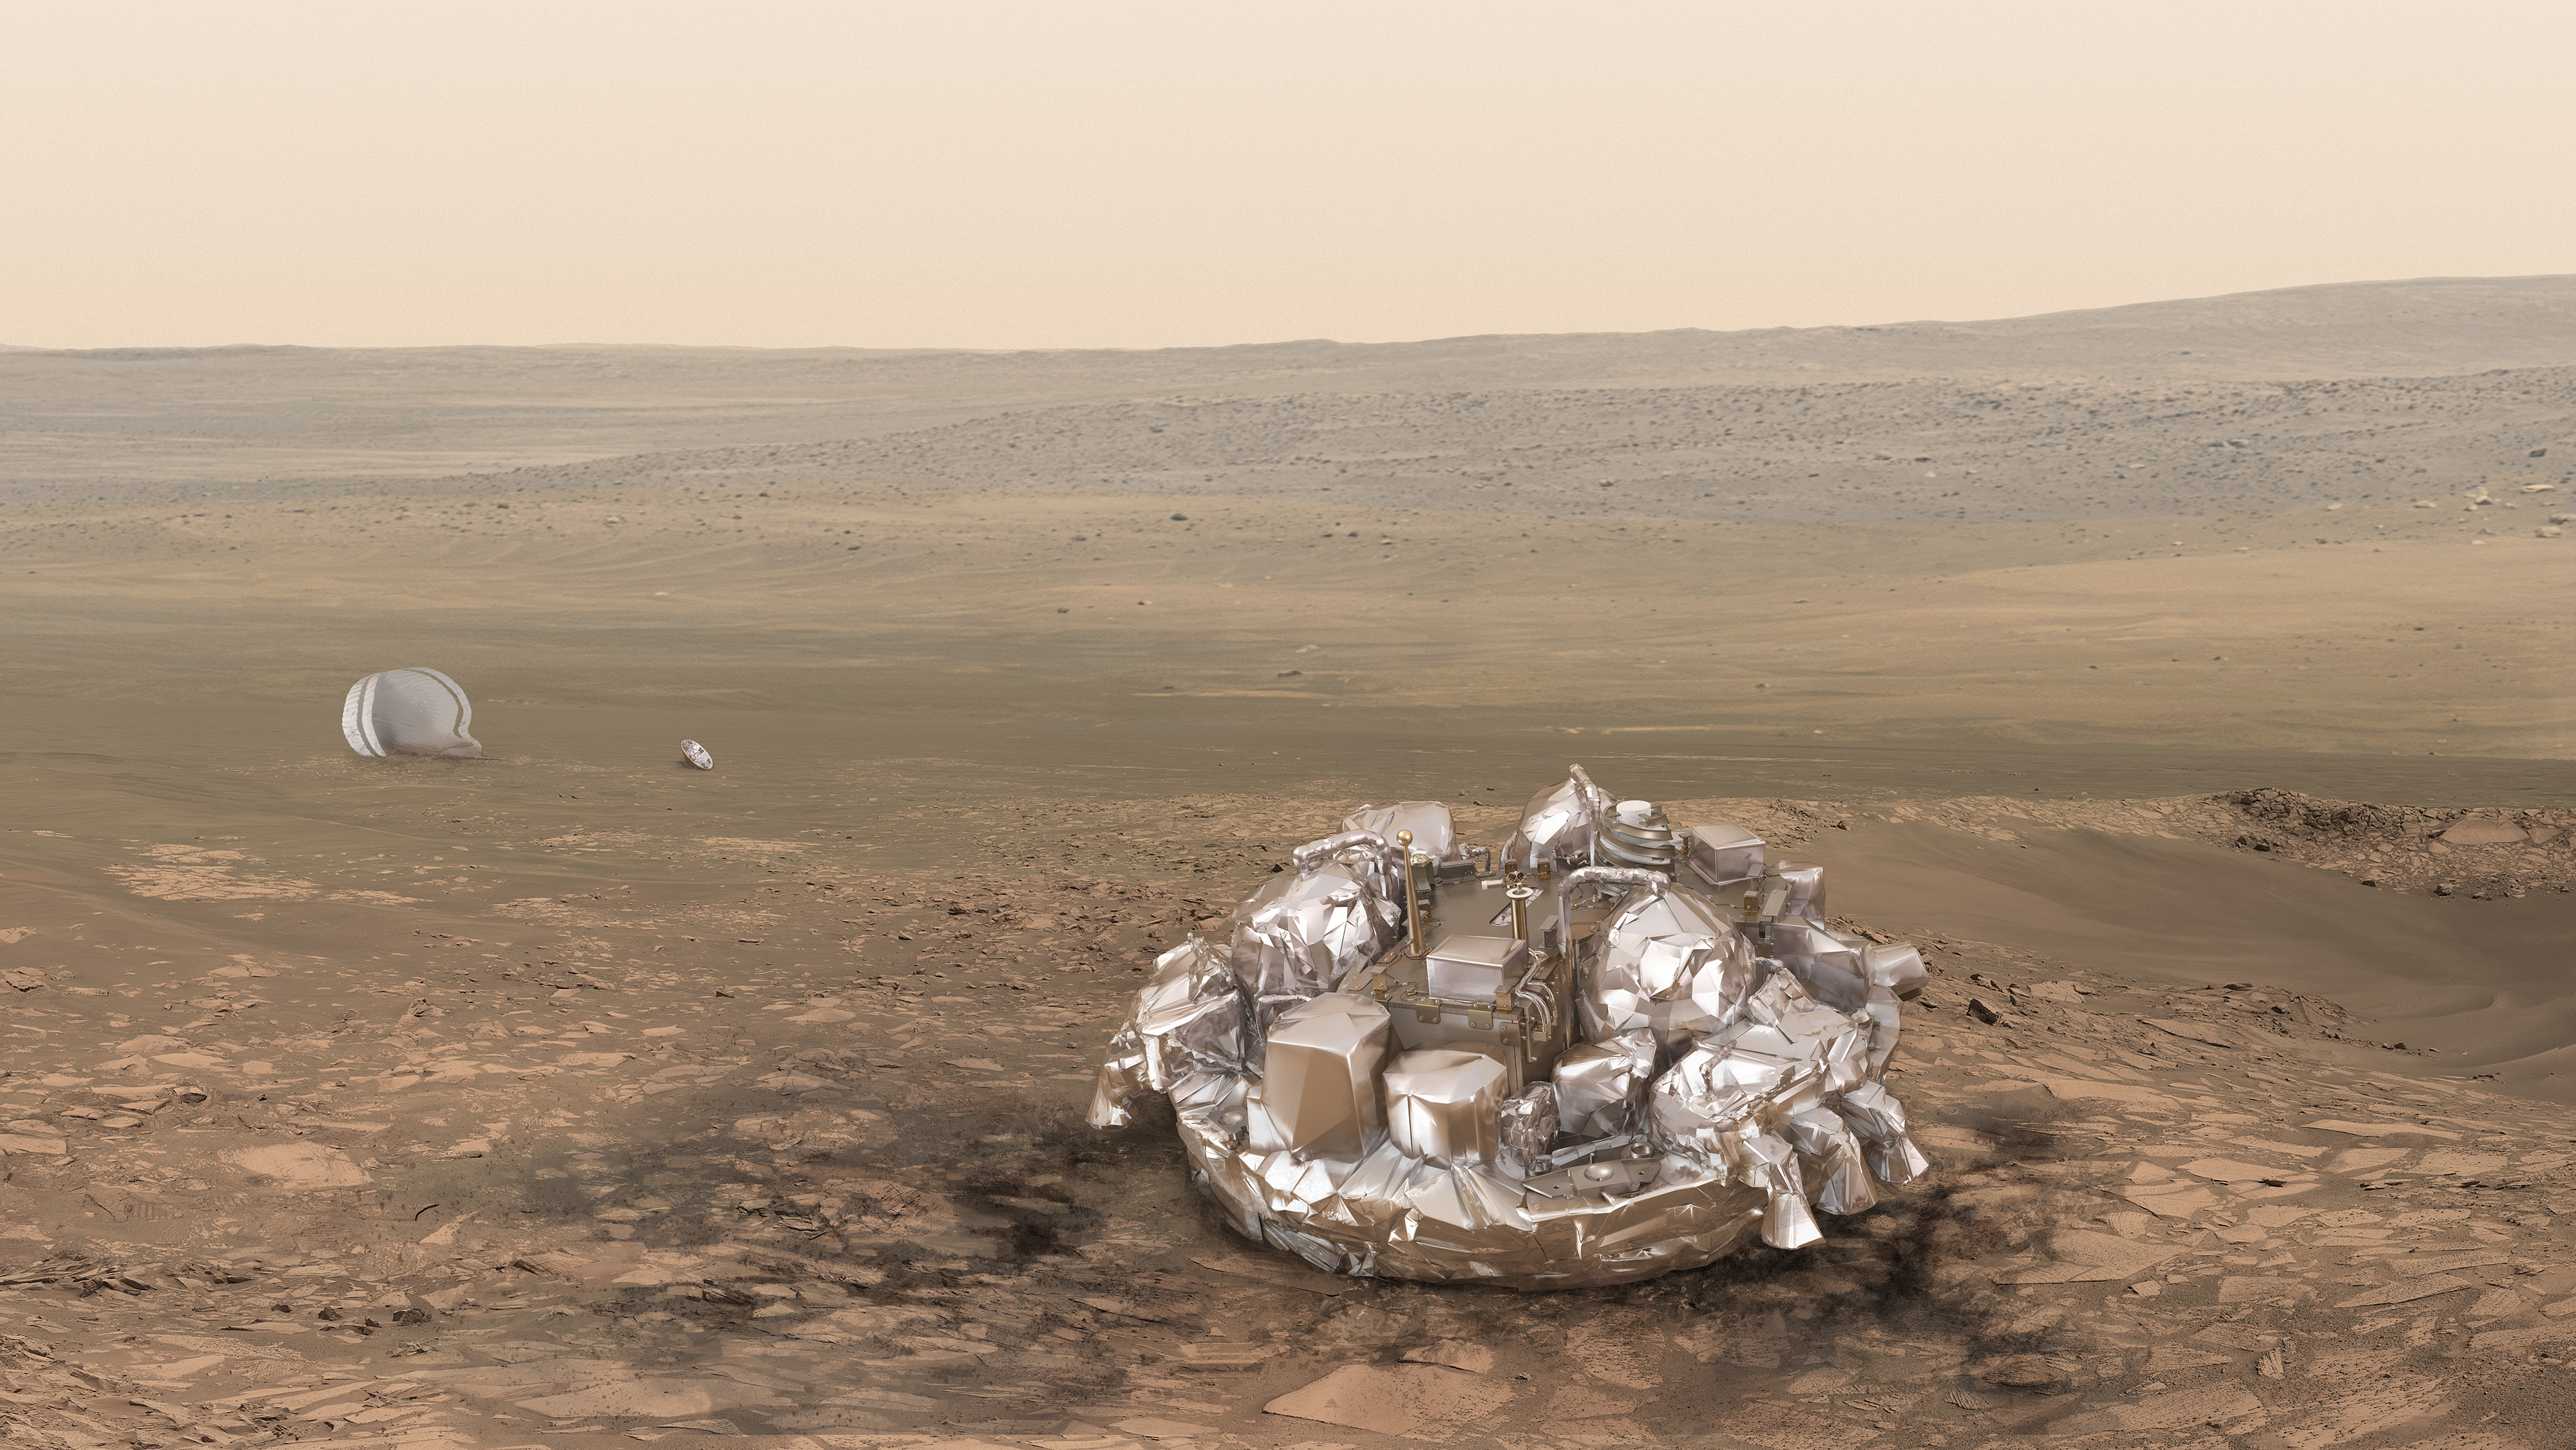 Artist impression of the Schiaparelli module on the surface of Mars